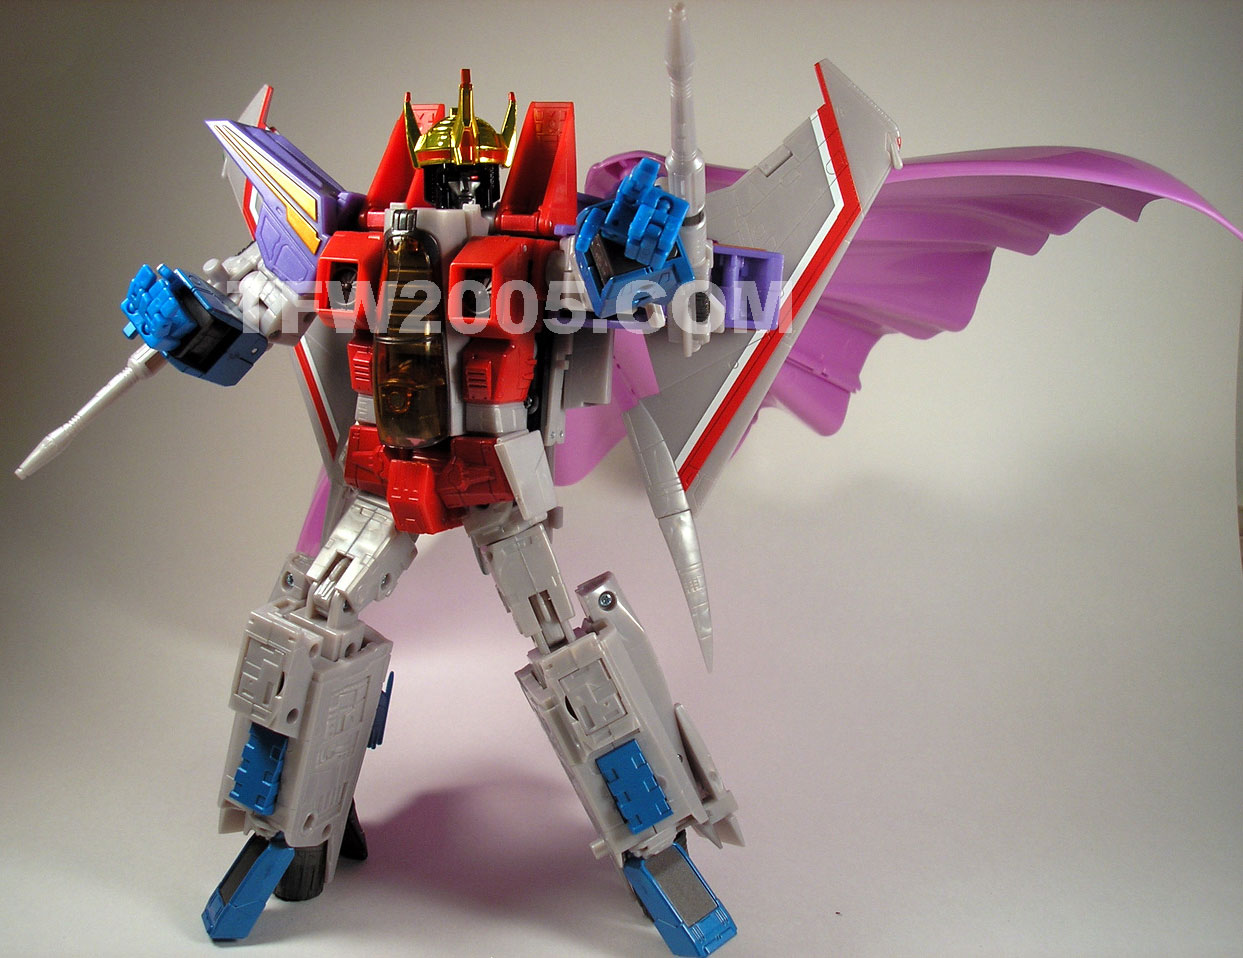 MP11 Masterpiece Starscream V2 Review-mp11-masterpiece-starscream-33.jpg